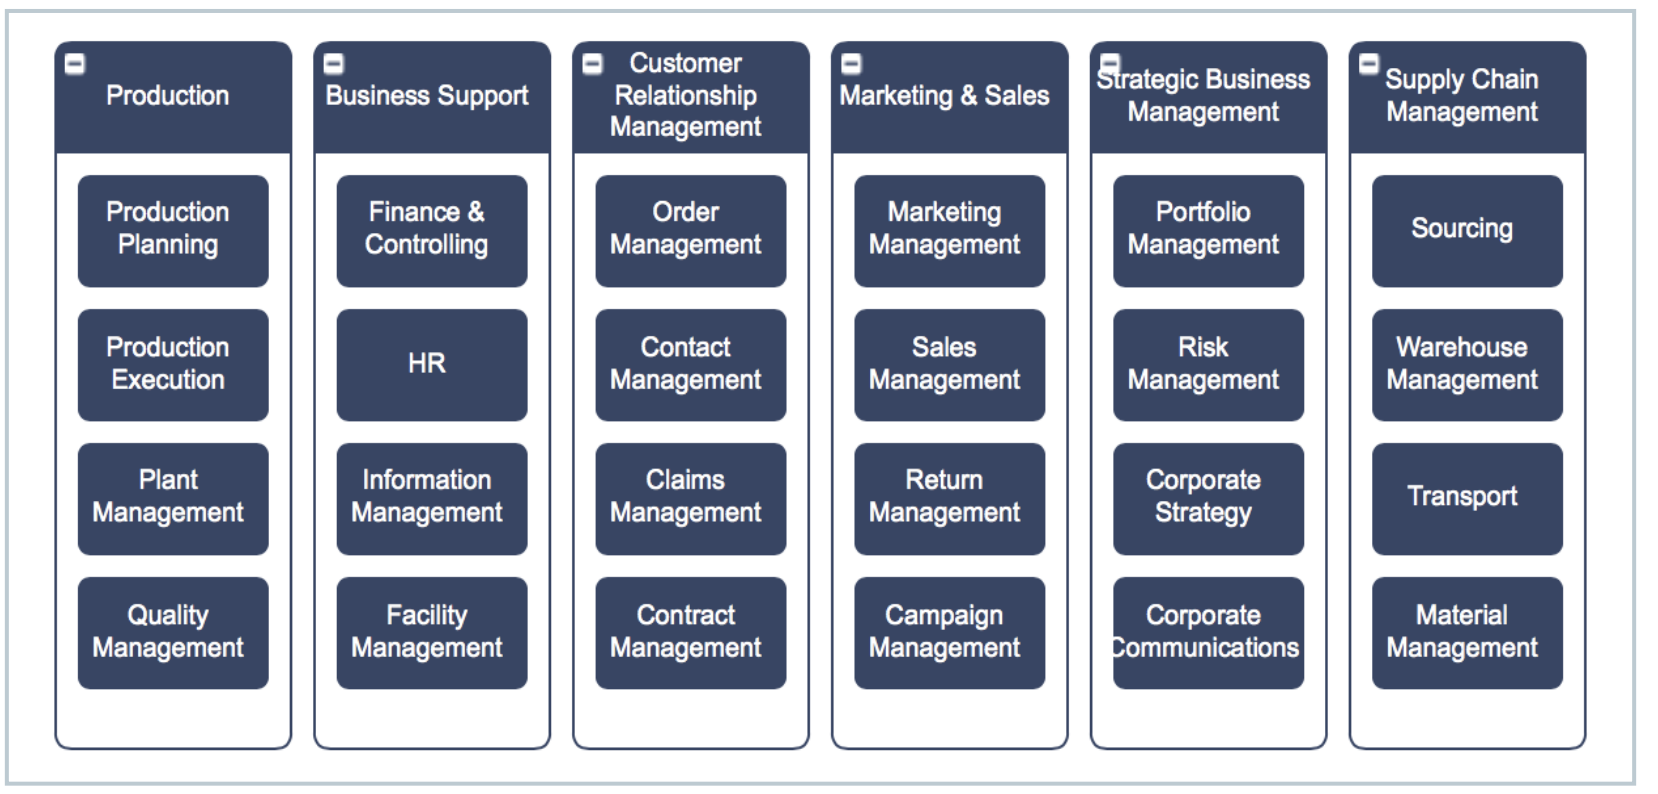 example of a two-level business capability model